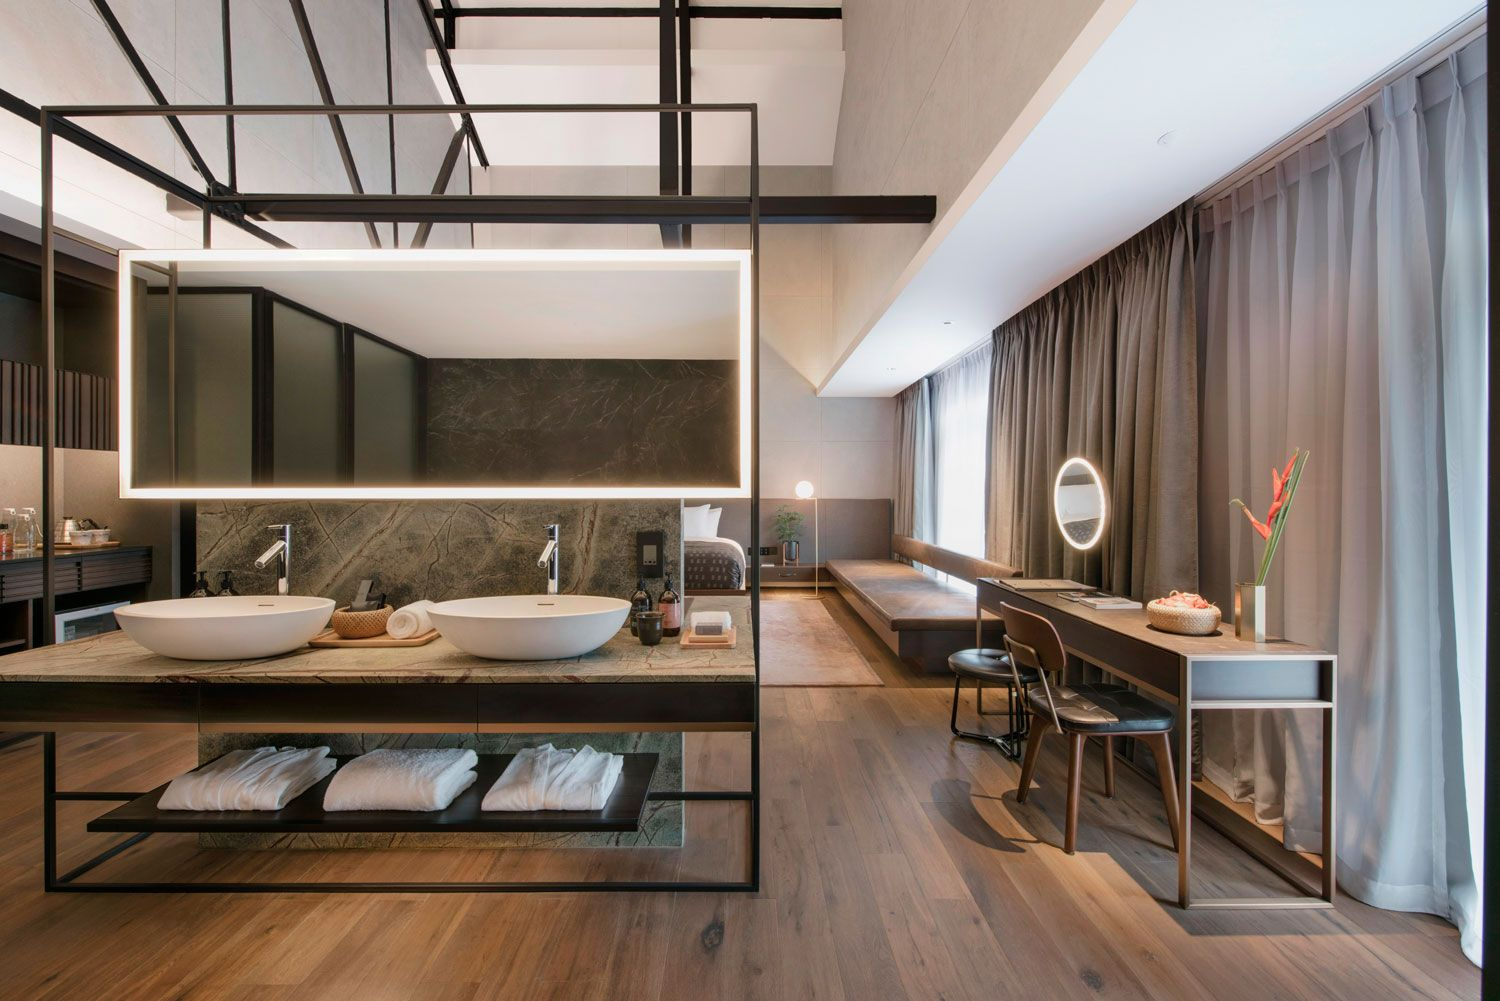 This 37 Room Boutique Hotel Reminiscent Of Singapores Vices And Trading Secrets During The Olden Days Is Finished With Modern Luxurious Touches